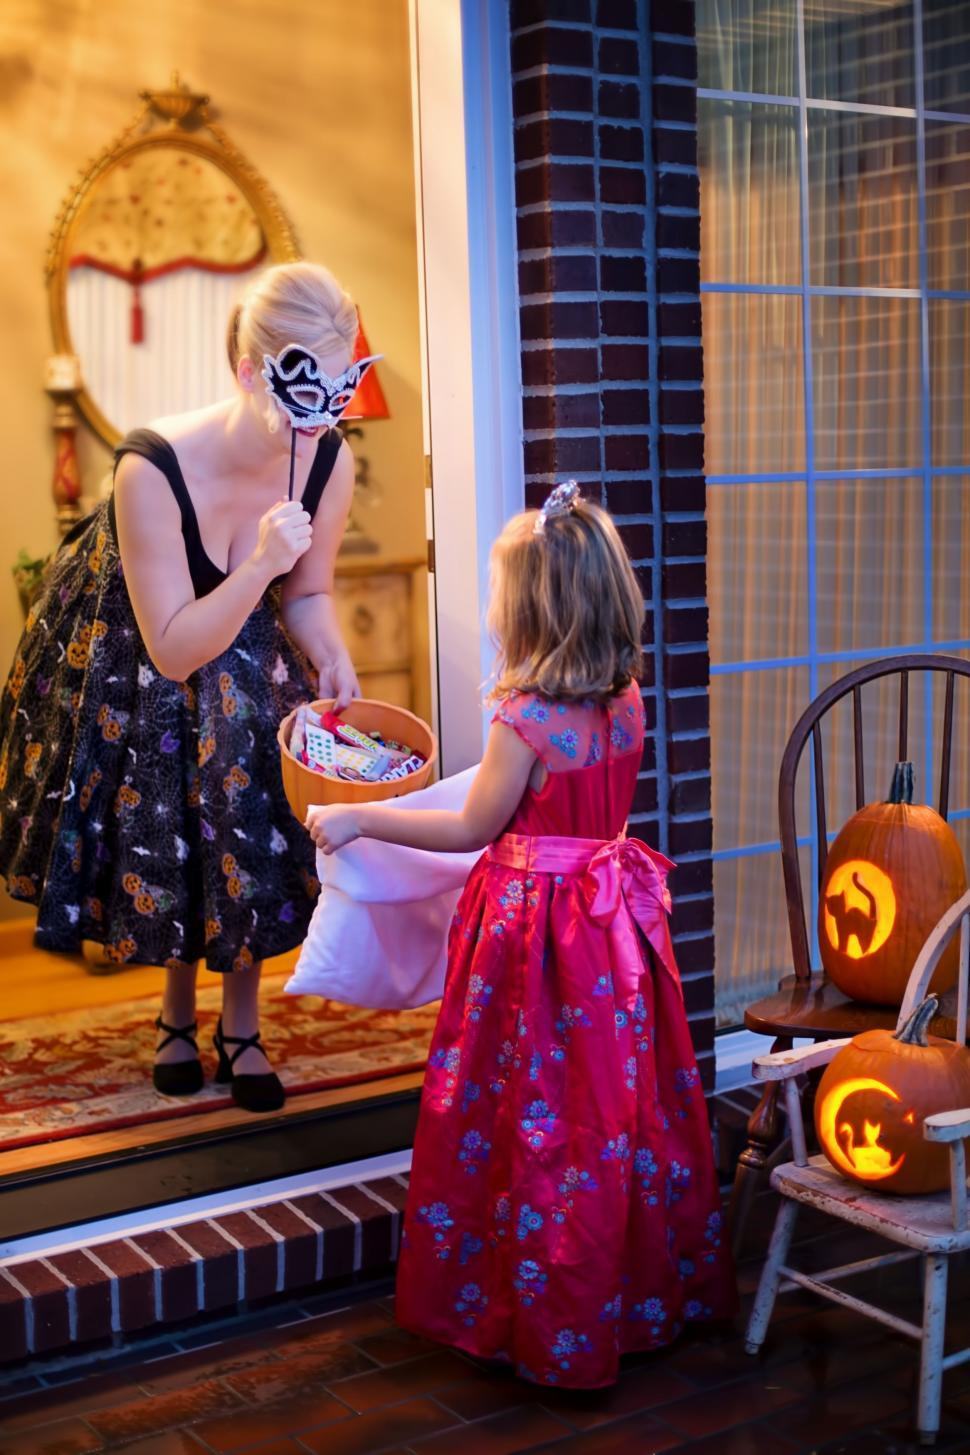 Download Free Stock Photo of Woman and Little Girl in Halloween Costumes